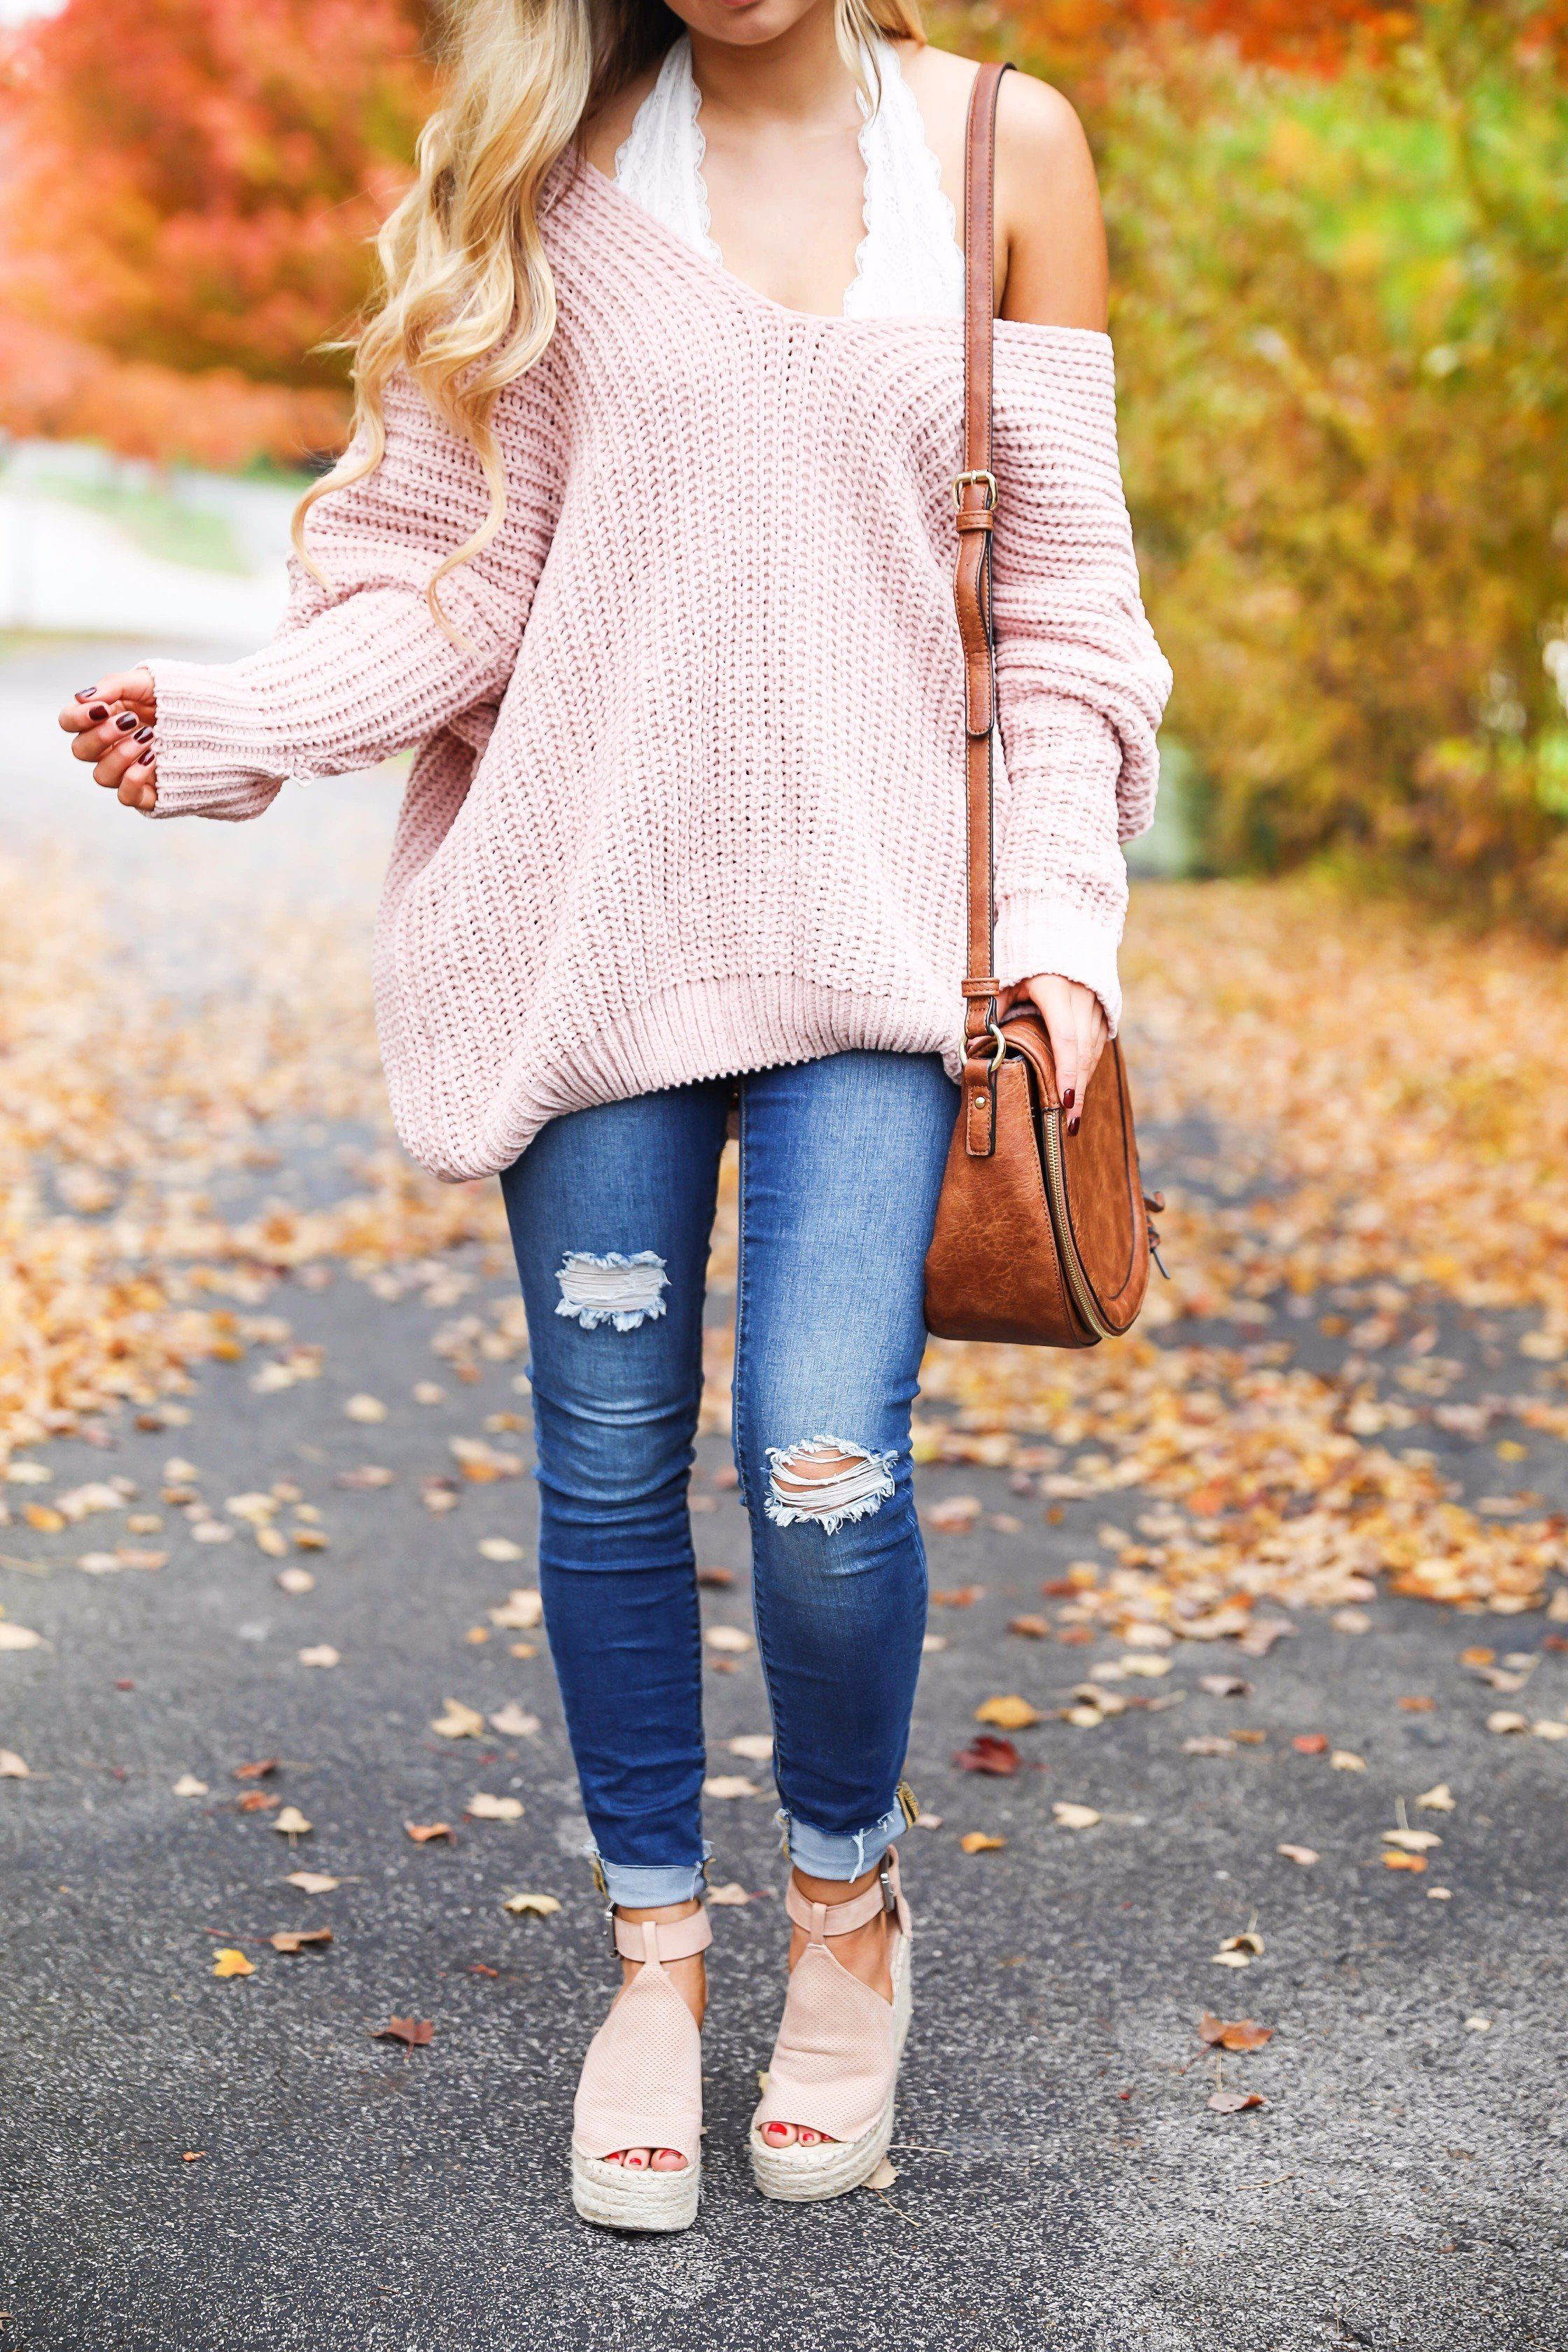 a1eda38fbe Pink slouchy sweater with cream free people bralette! The perfect sweater  for bralettes! Pretty fall foliage photoshoot on fashion blog daily dose of  charm ...